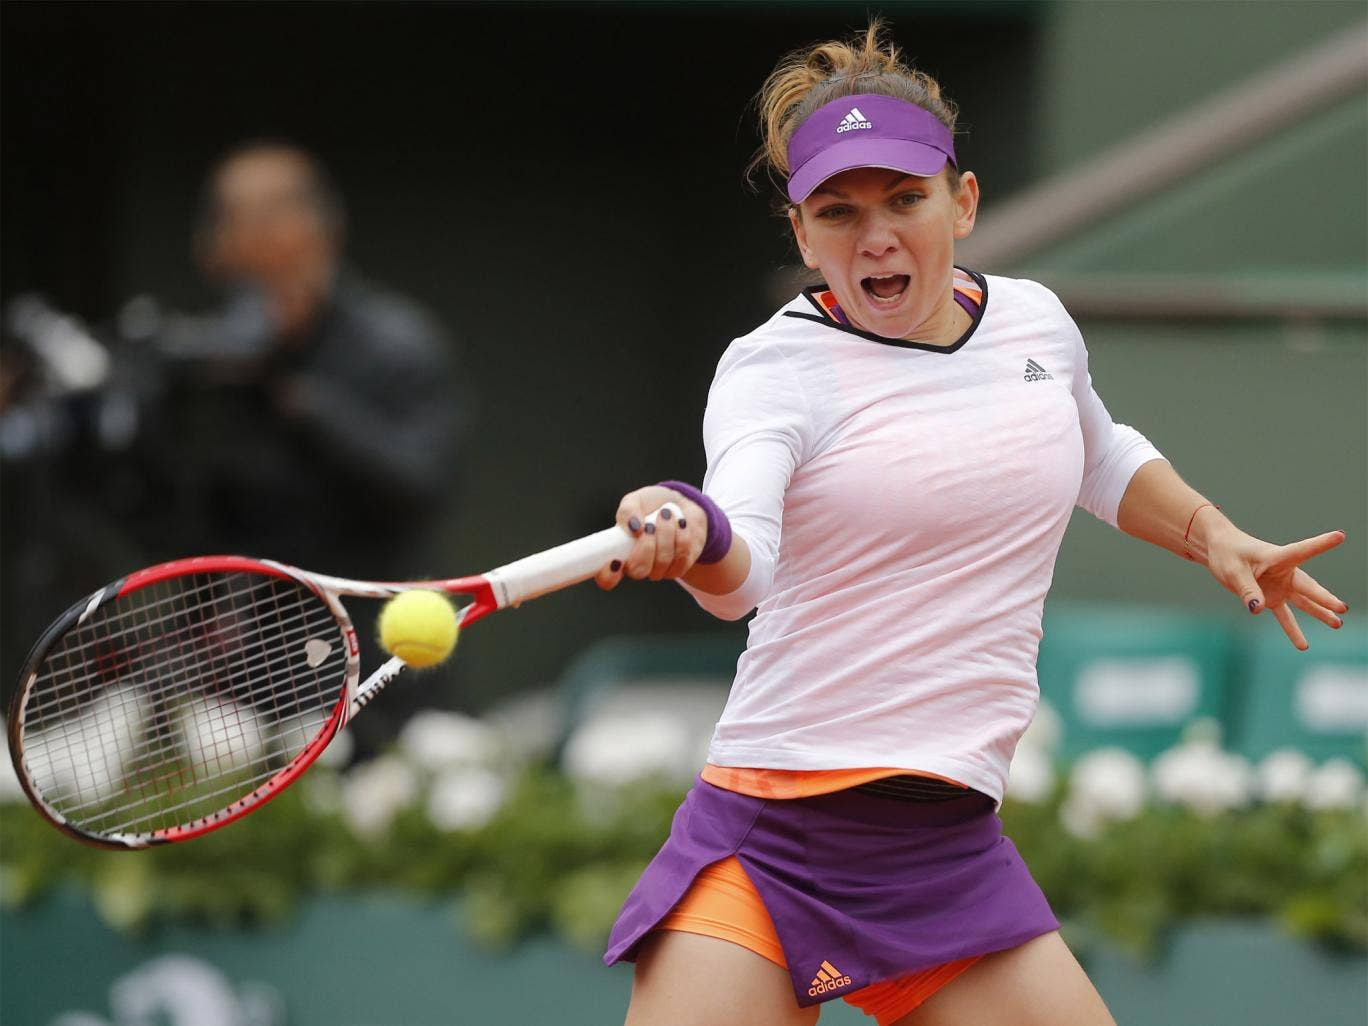 Simona Halep during her first round match